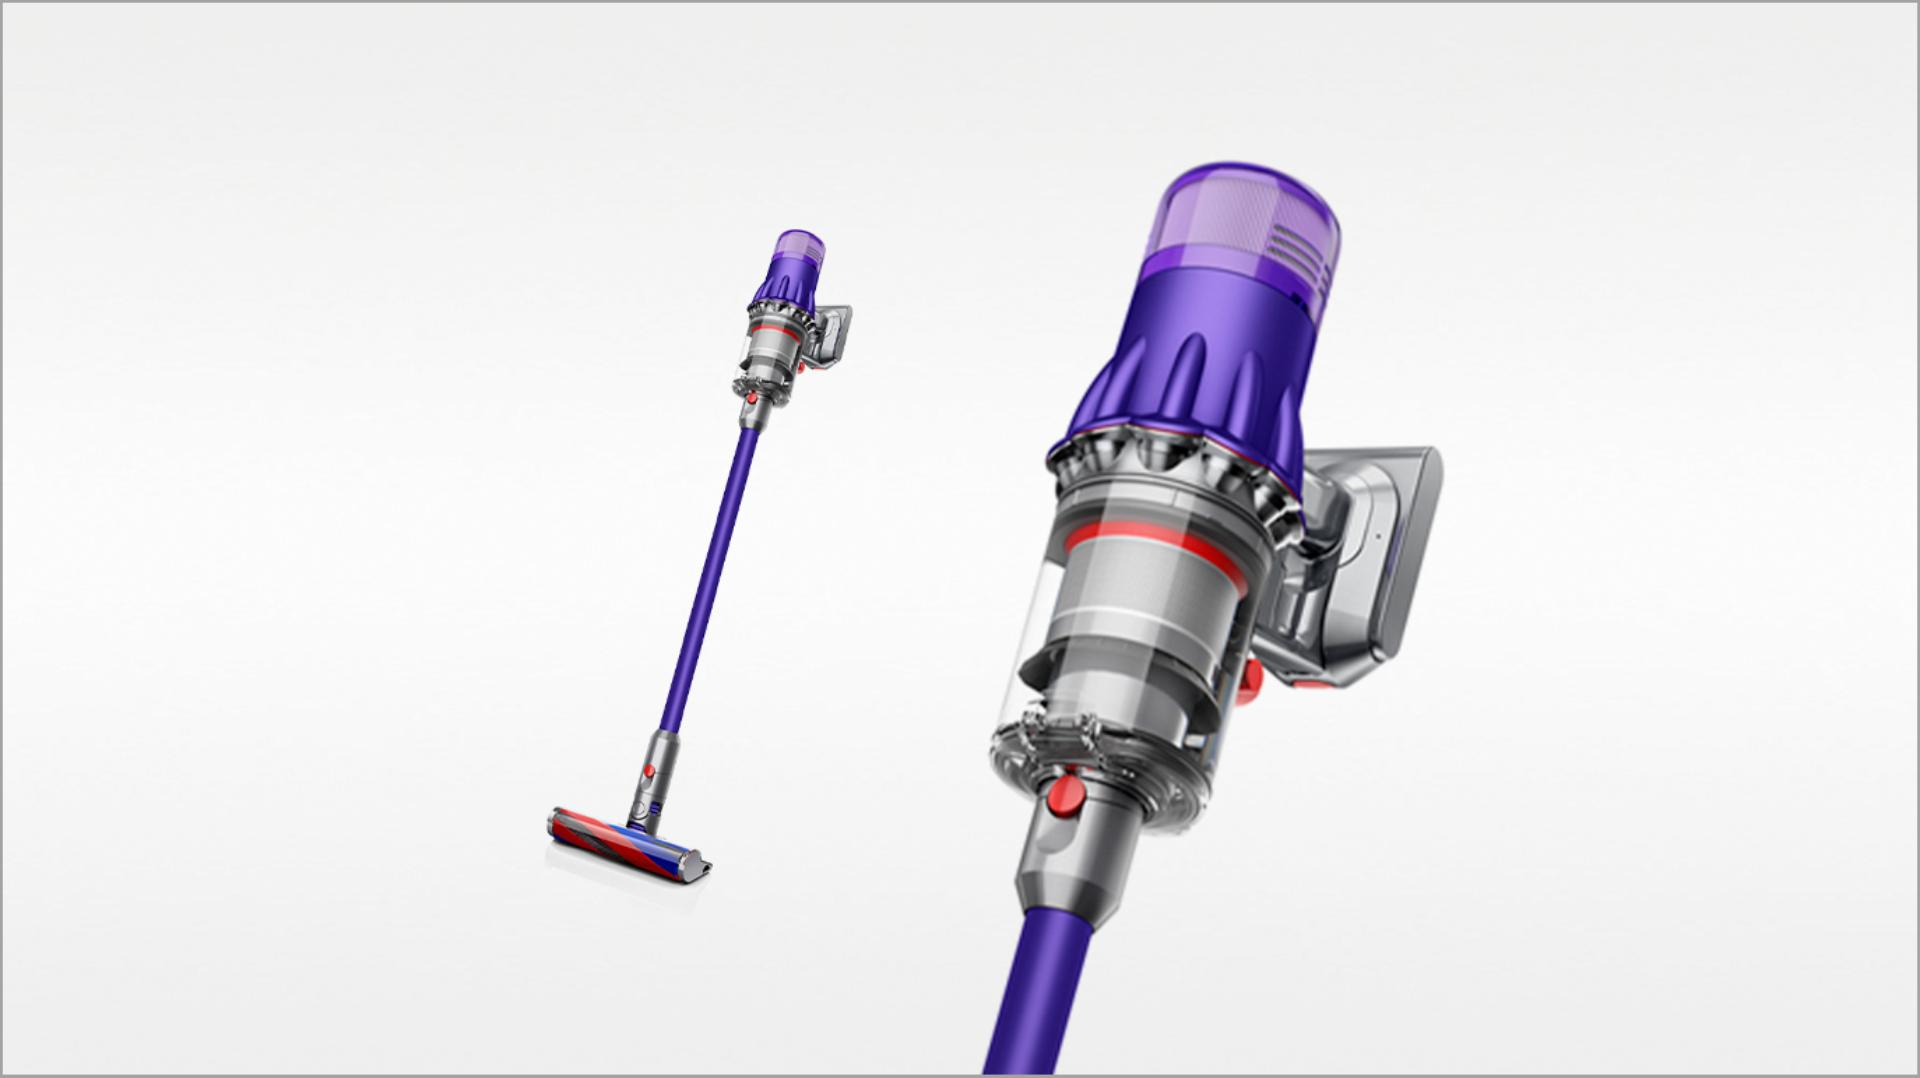 Dyson Digital Slim™ Fluffy (Purple/Iron)